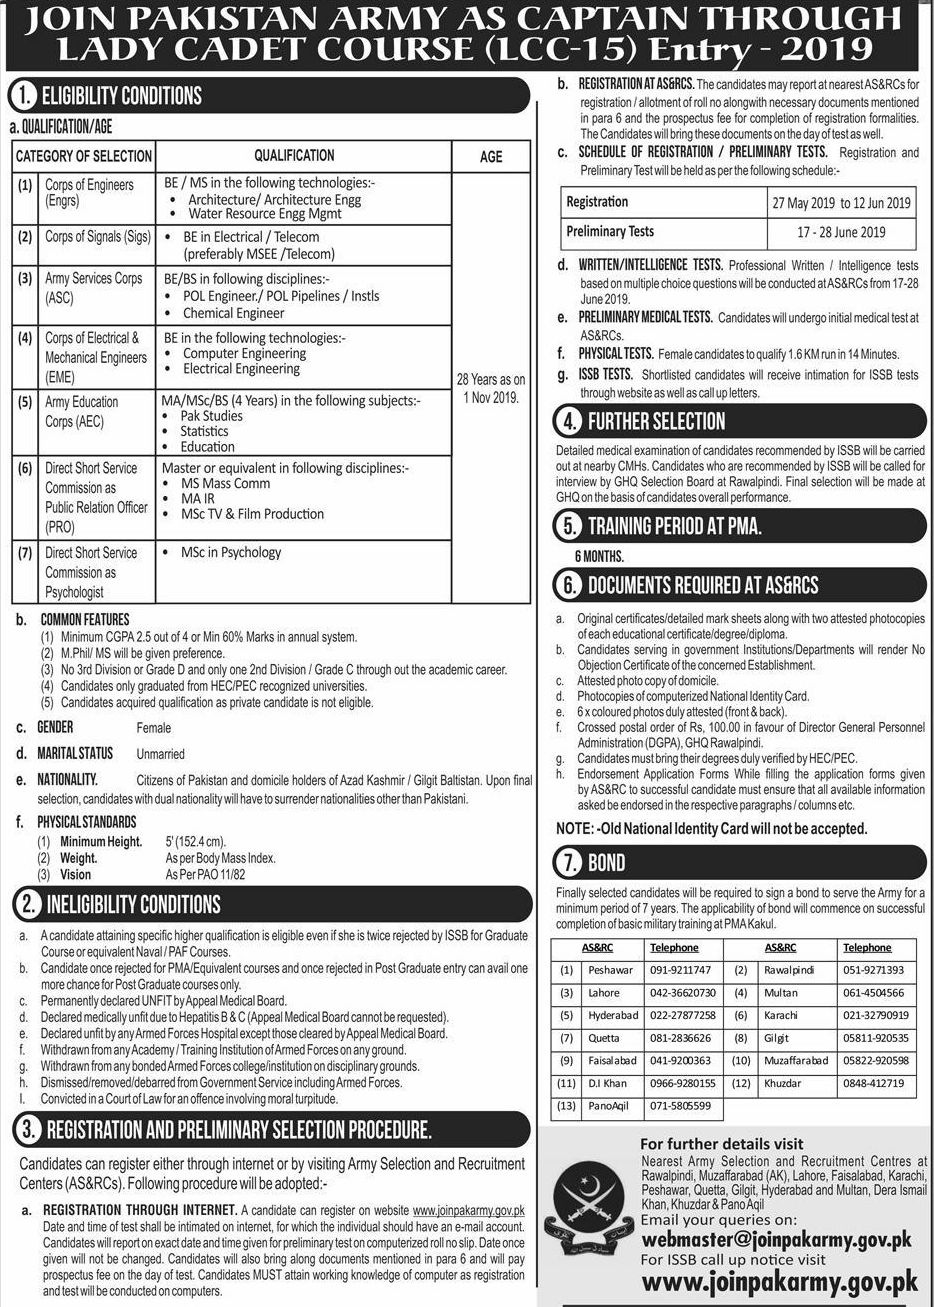 Army Jobs, join pak army as captain , pak army Lady Captain Jobs 2019 May